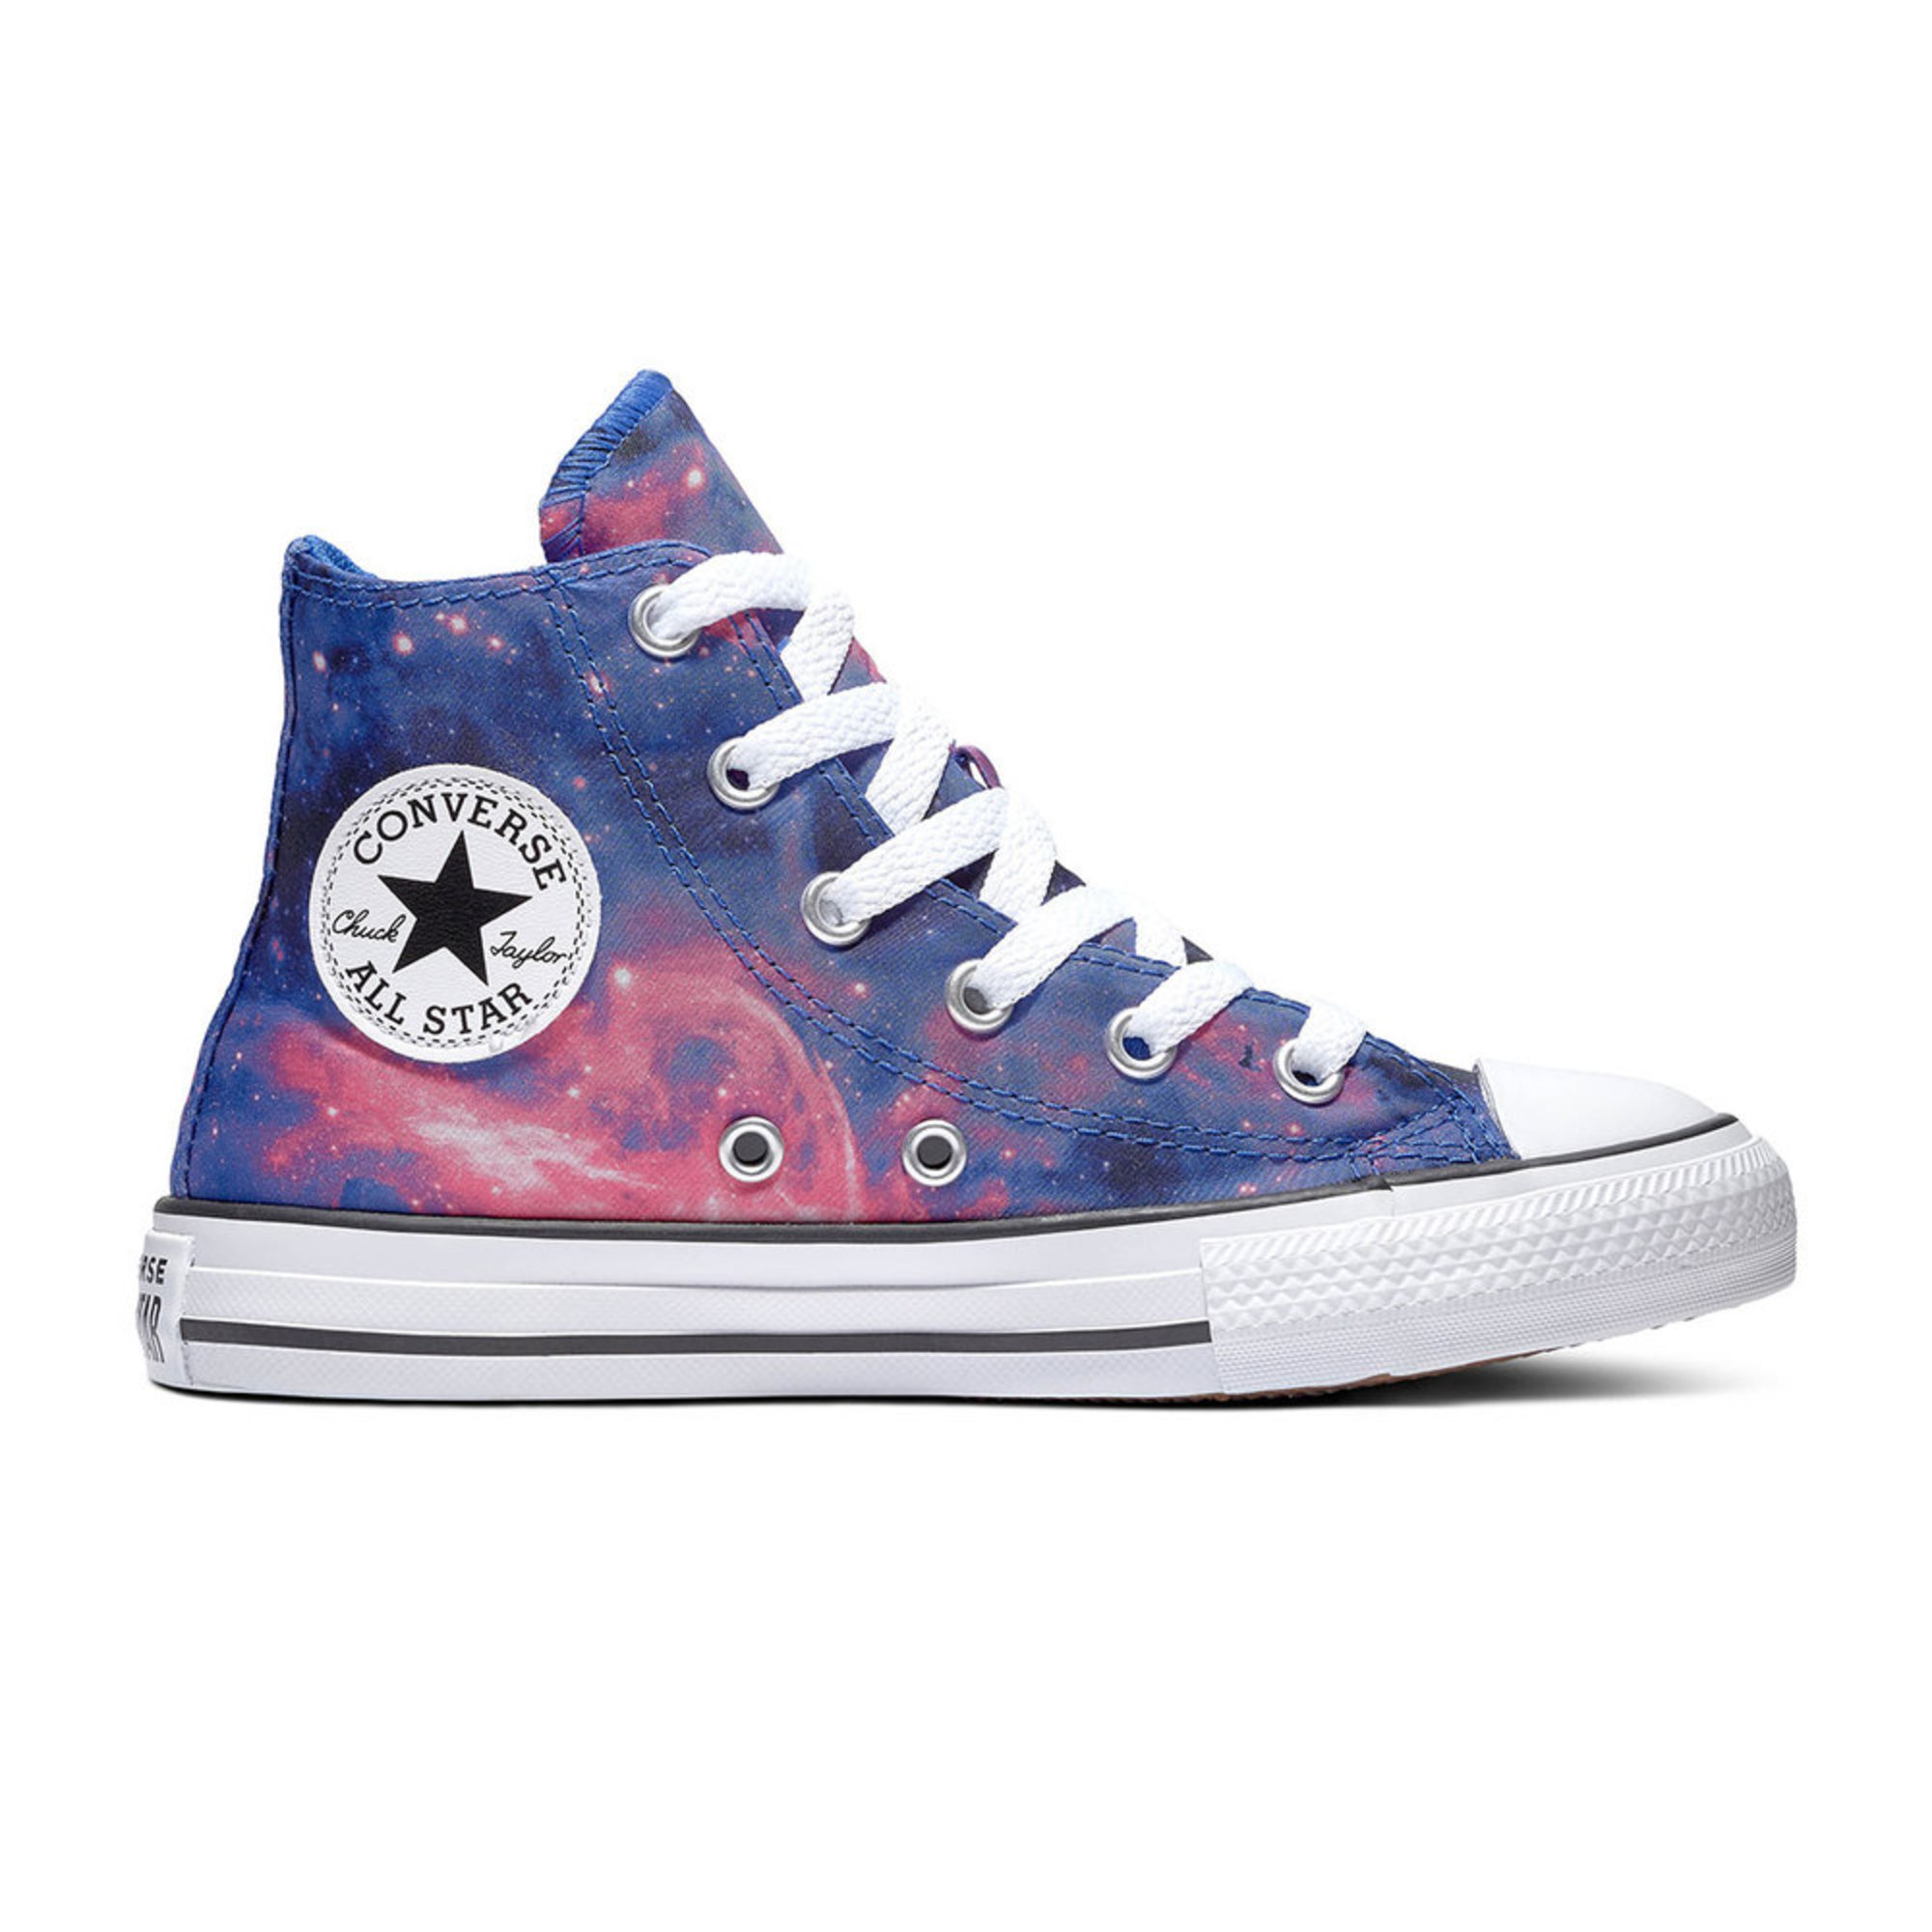 7757073bb6 Converse Girls Chuck Taylor All Star Miss Galaxy Print Hi Top ...